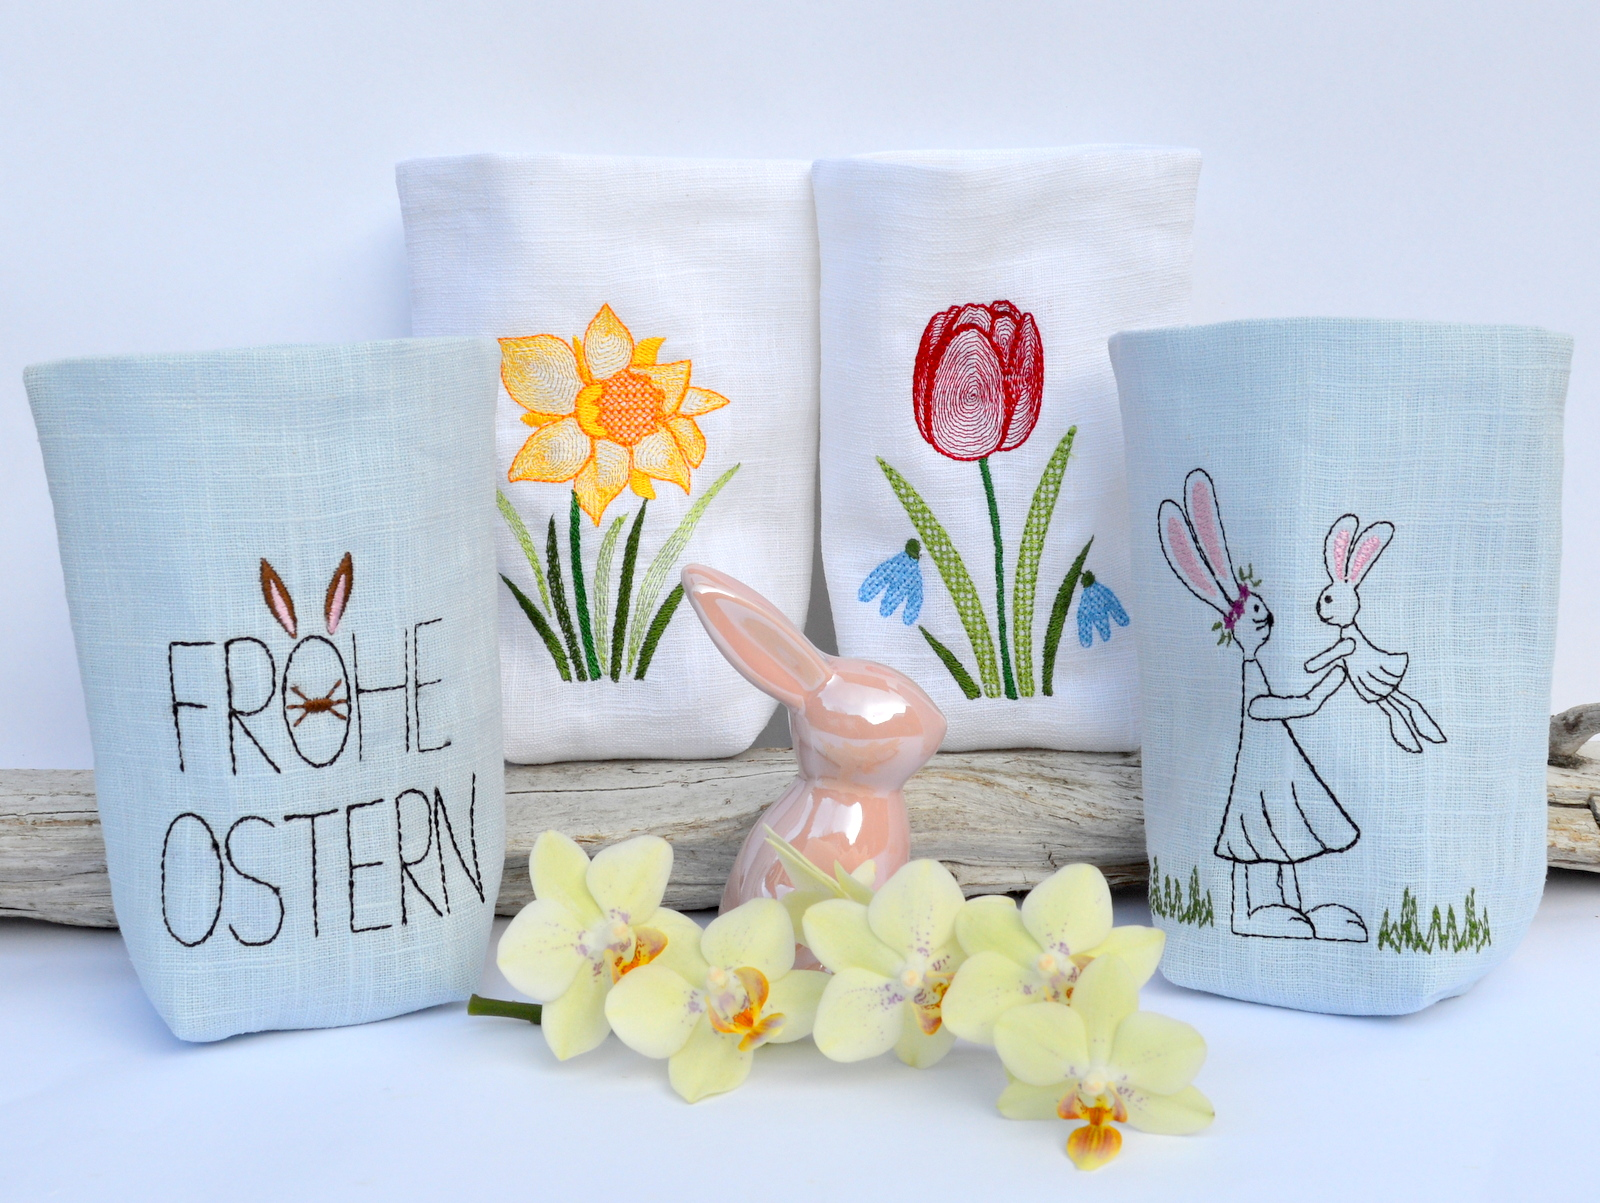 ITH Beutel Ostern